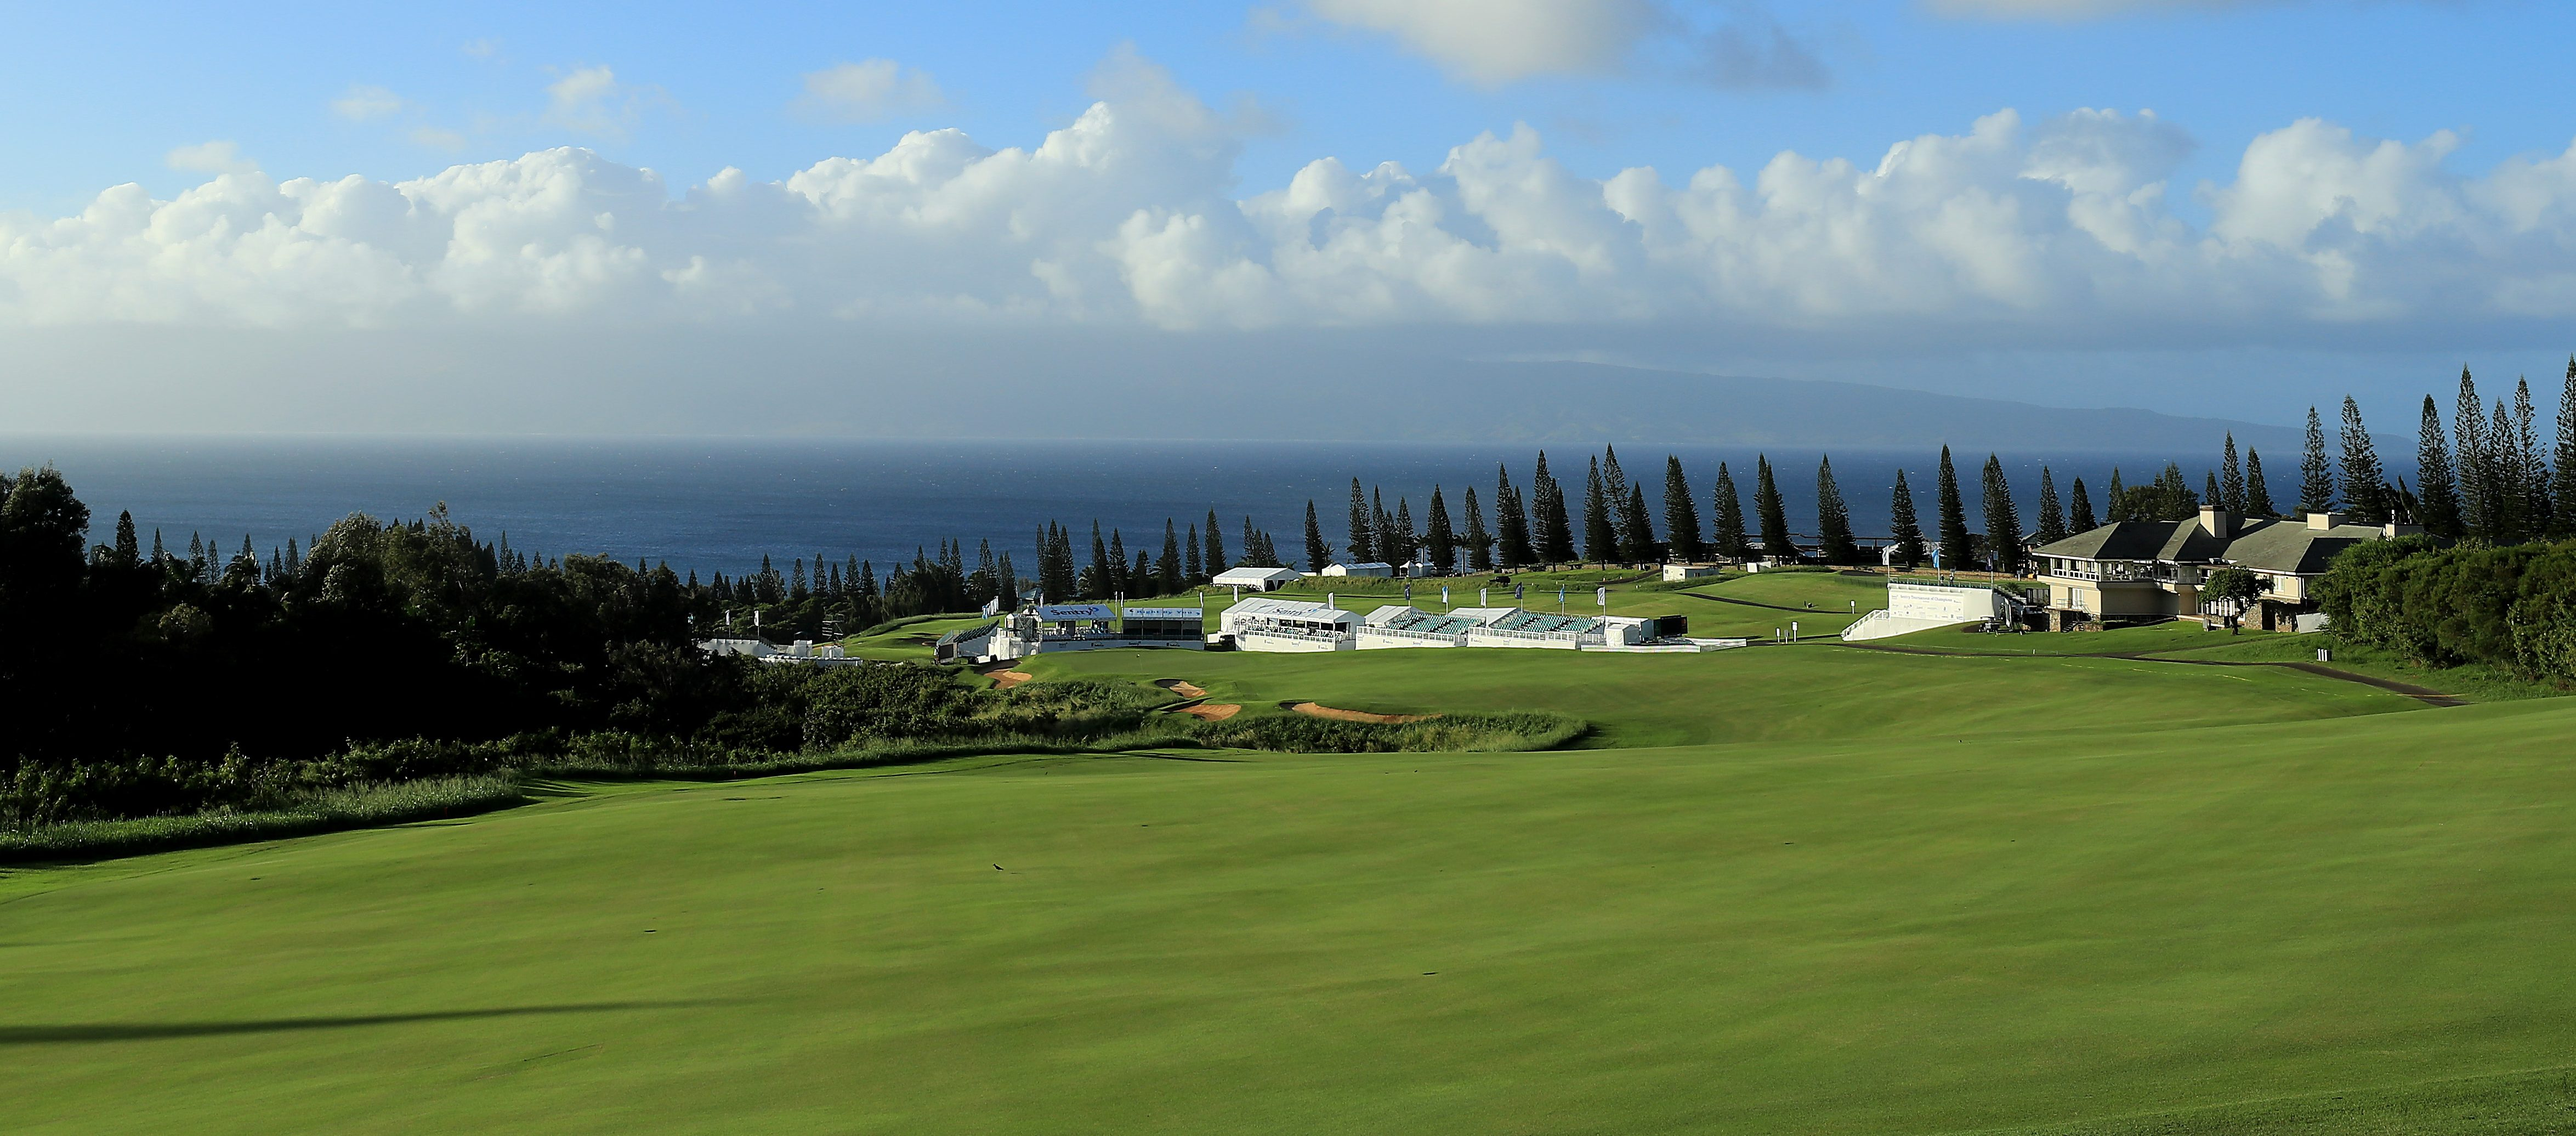 LAHAINA, HAWAII - DECEMBER 31: A general view of the 18th hole as seen during a practice round prior to the Sentry Tournament of Champions at Kapalua Golf Club Plantation course on December 31, 2018 in Lahaina, Hawaii. (Photo by Sam Greenwood/Getty Images)